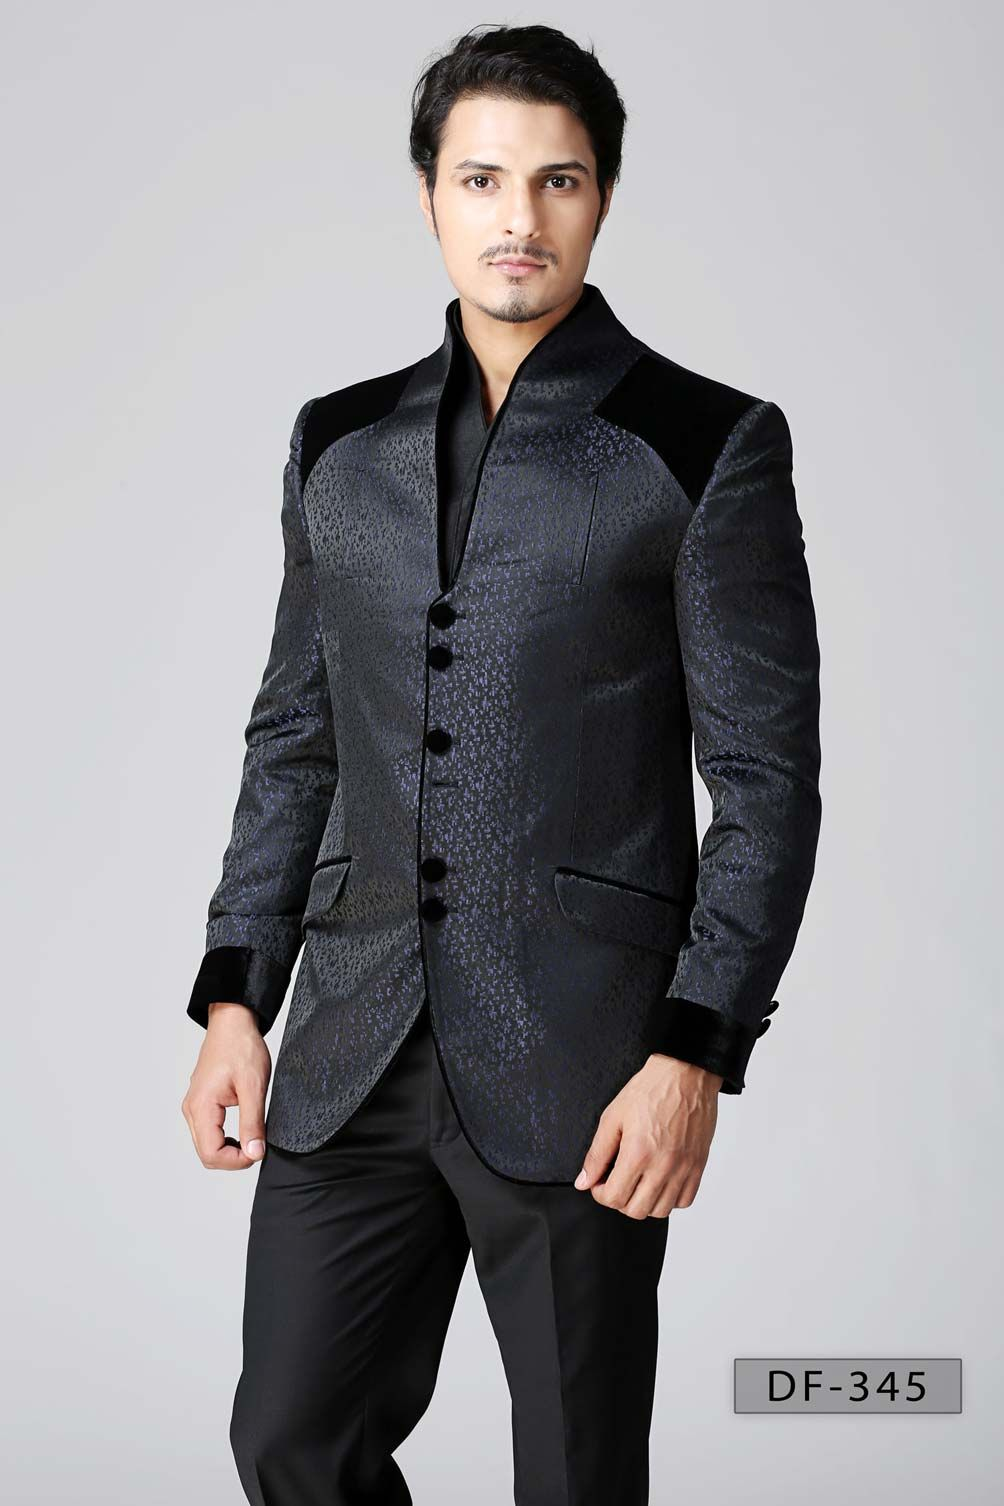 Product Details Diwan Saheb Designer Suits For Men Mens Designer Fashion Mens Outfits